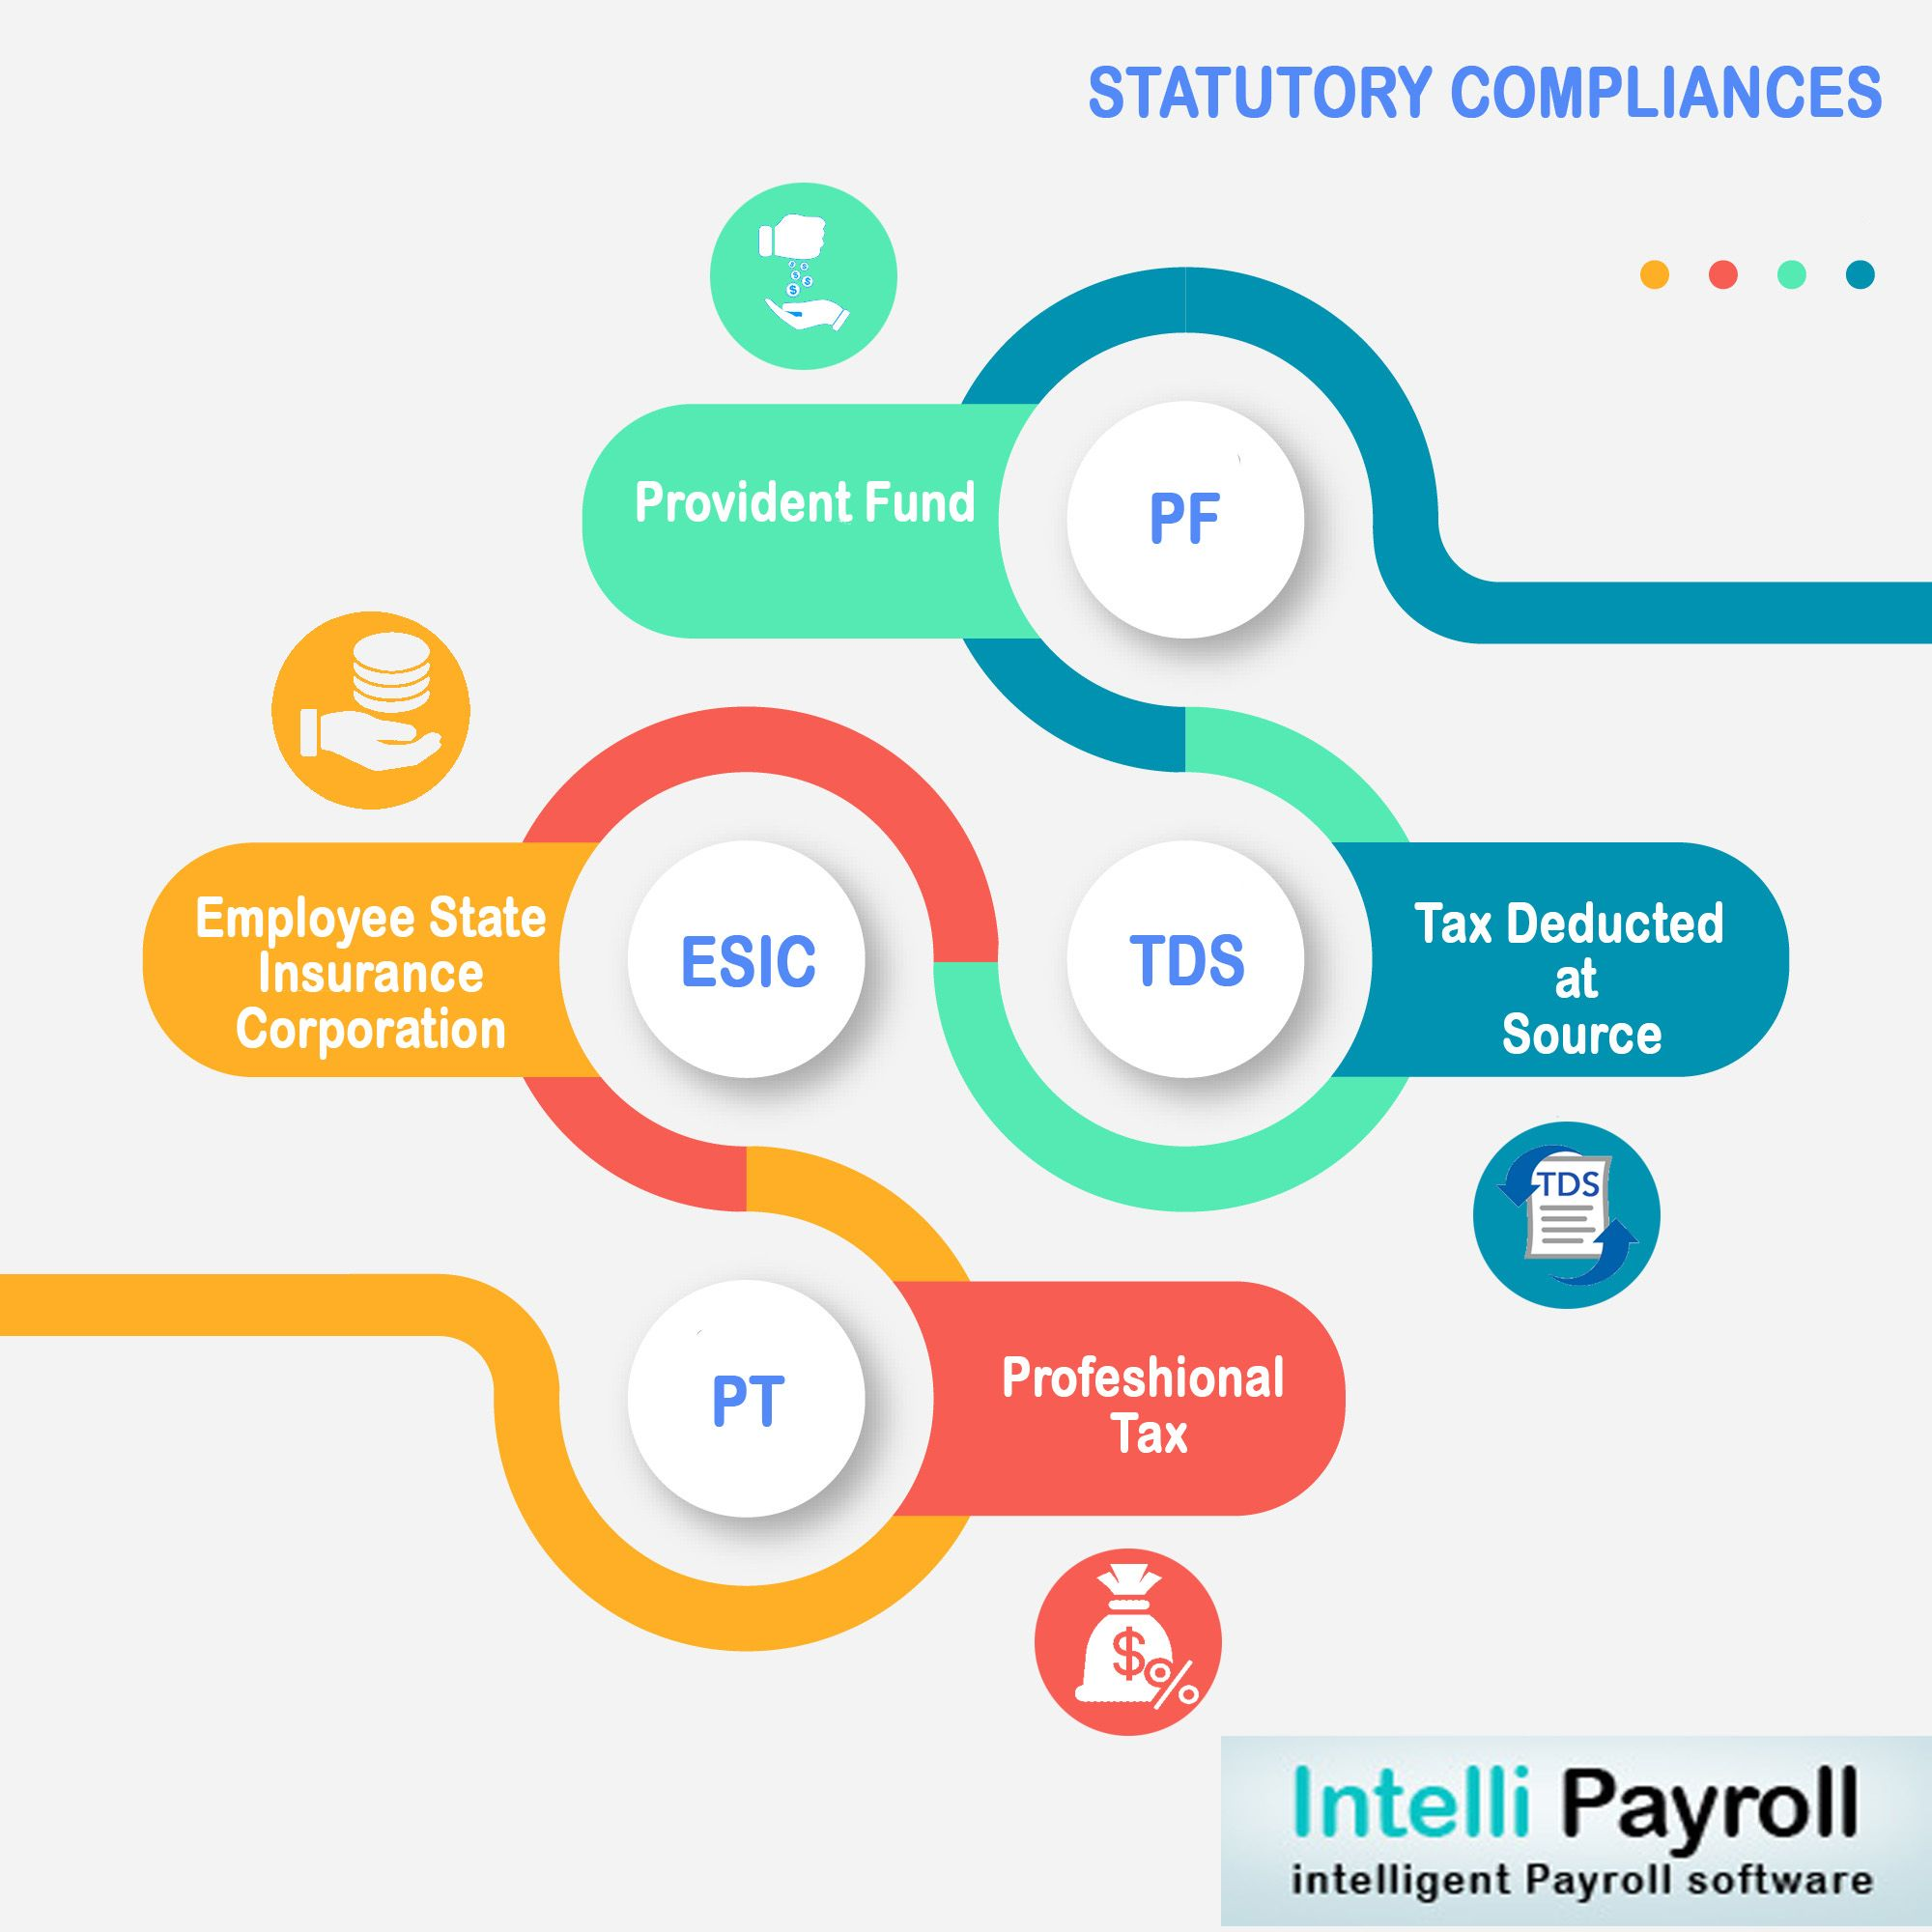 Intellipayroll 100 Compliant Payroll Software With All